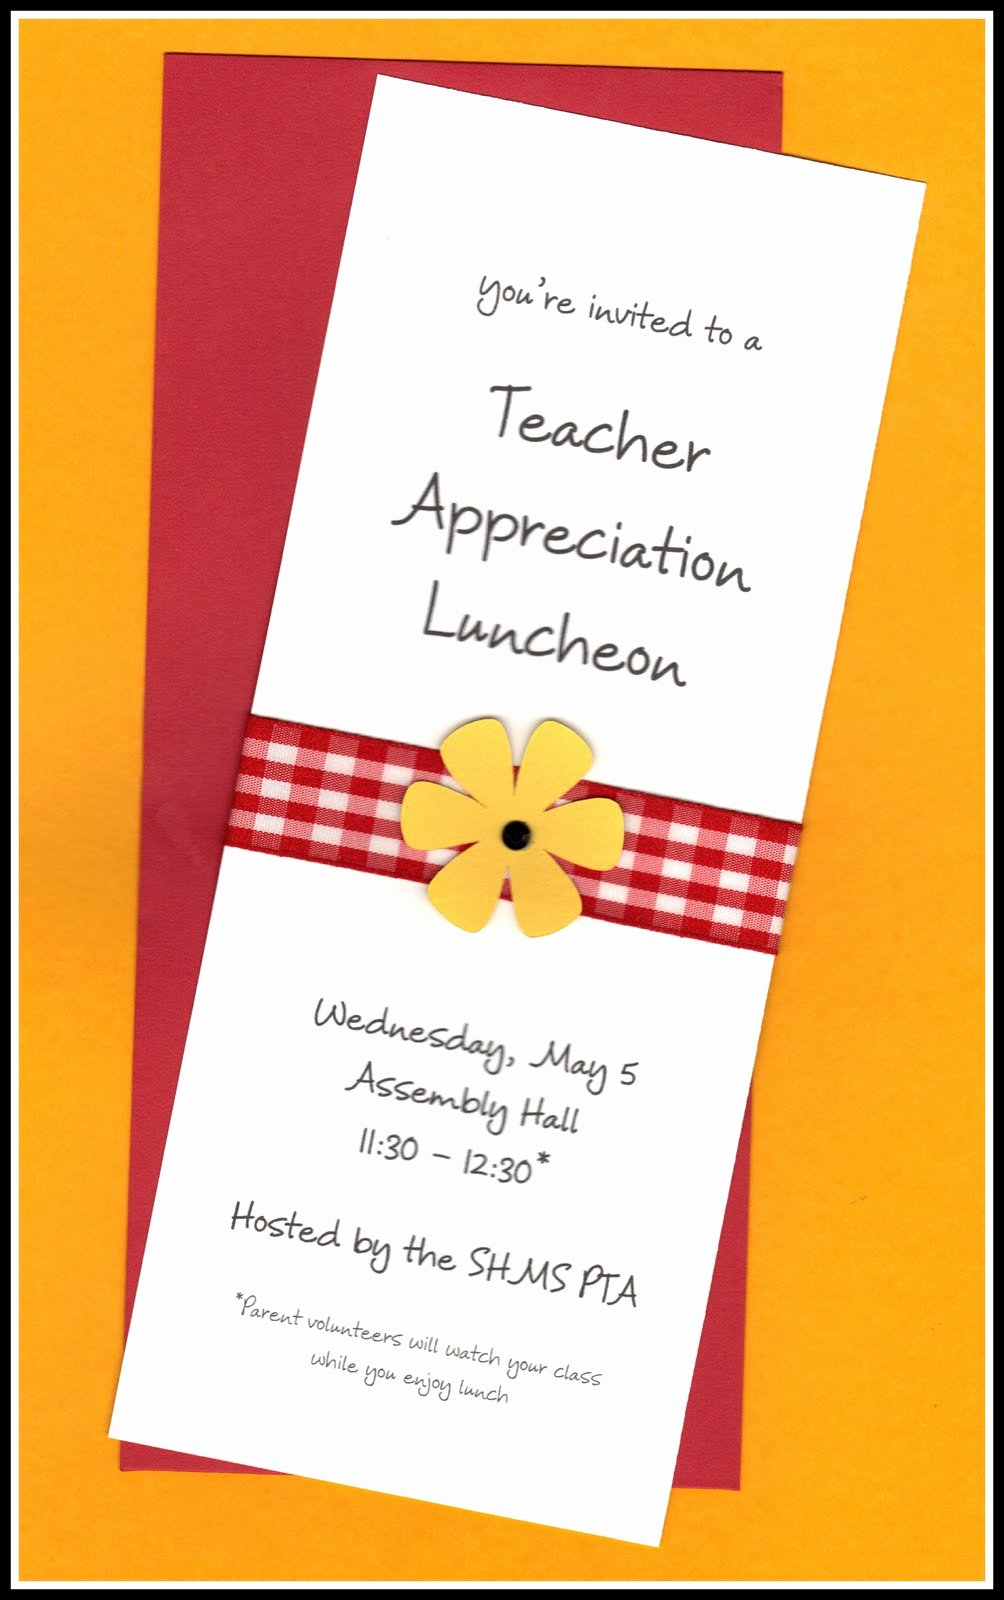 Teacher Appreciation Luncheon Invitation Inspirational Posh In A Pinch We Heart Teachers Party and Celebration Ideas